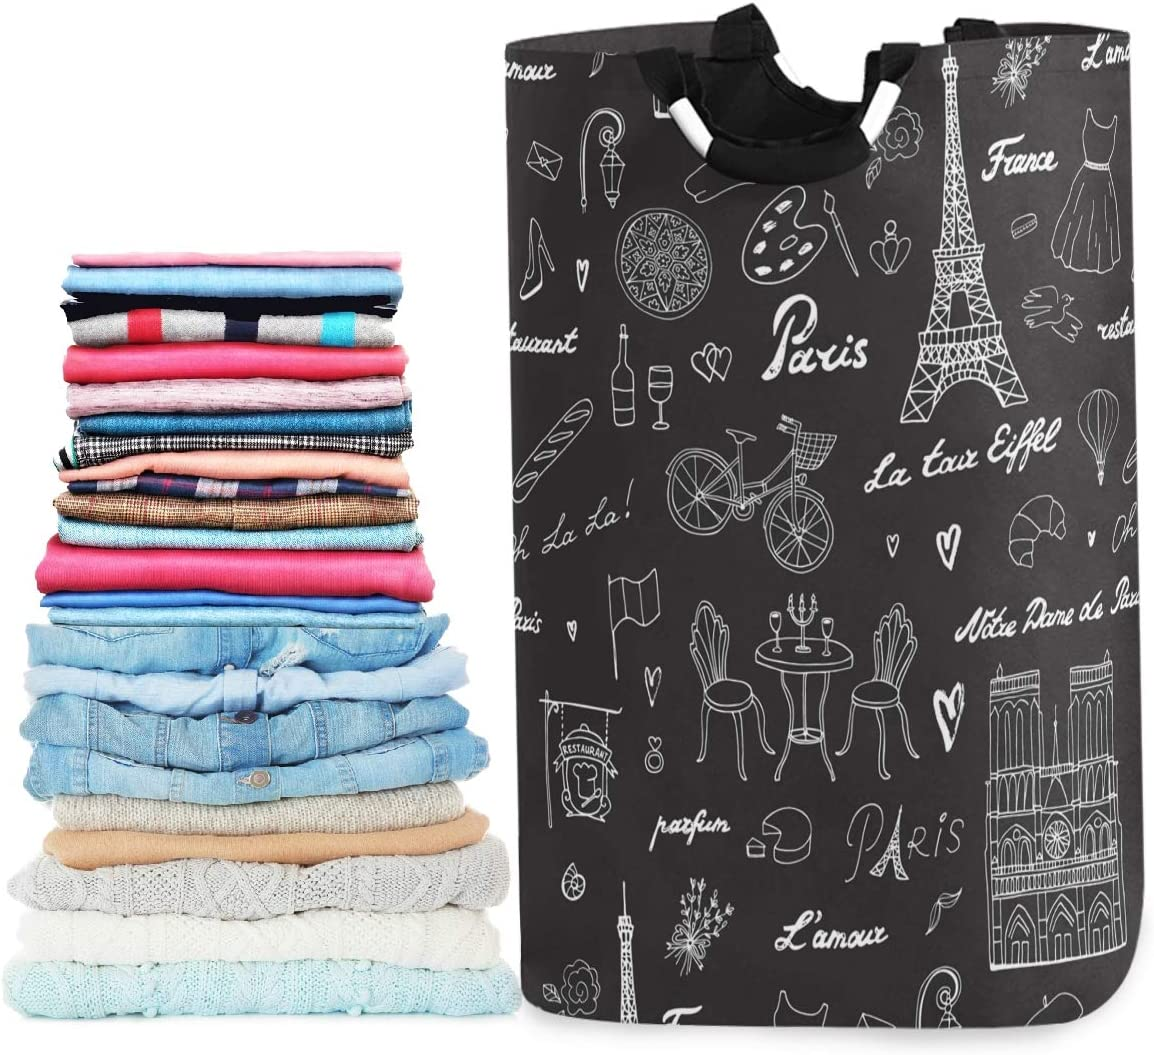 visesunny Collapsible Laundry Basket Paris Eiffel Tower Large Laundry Hamper Waterproof Foldable Fabric Dirty Clothes Toy Organizer for Bathroom Kids Room Dorm